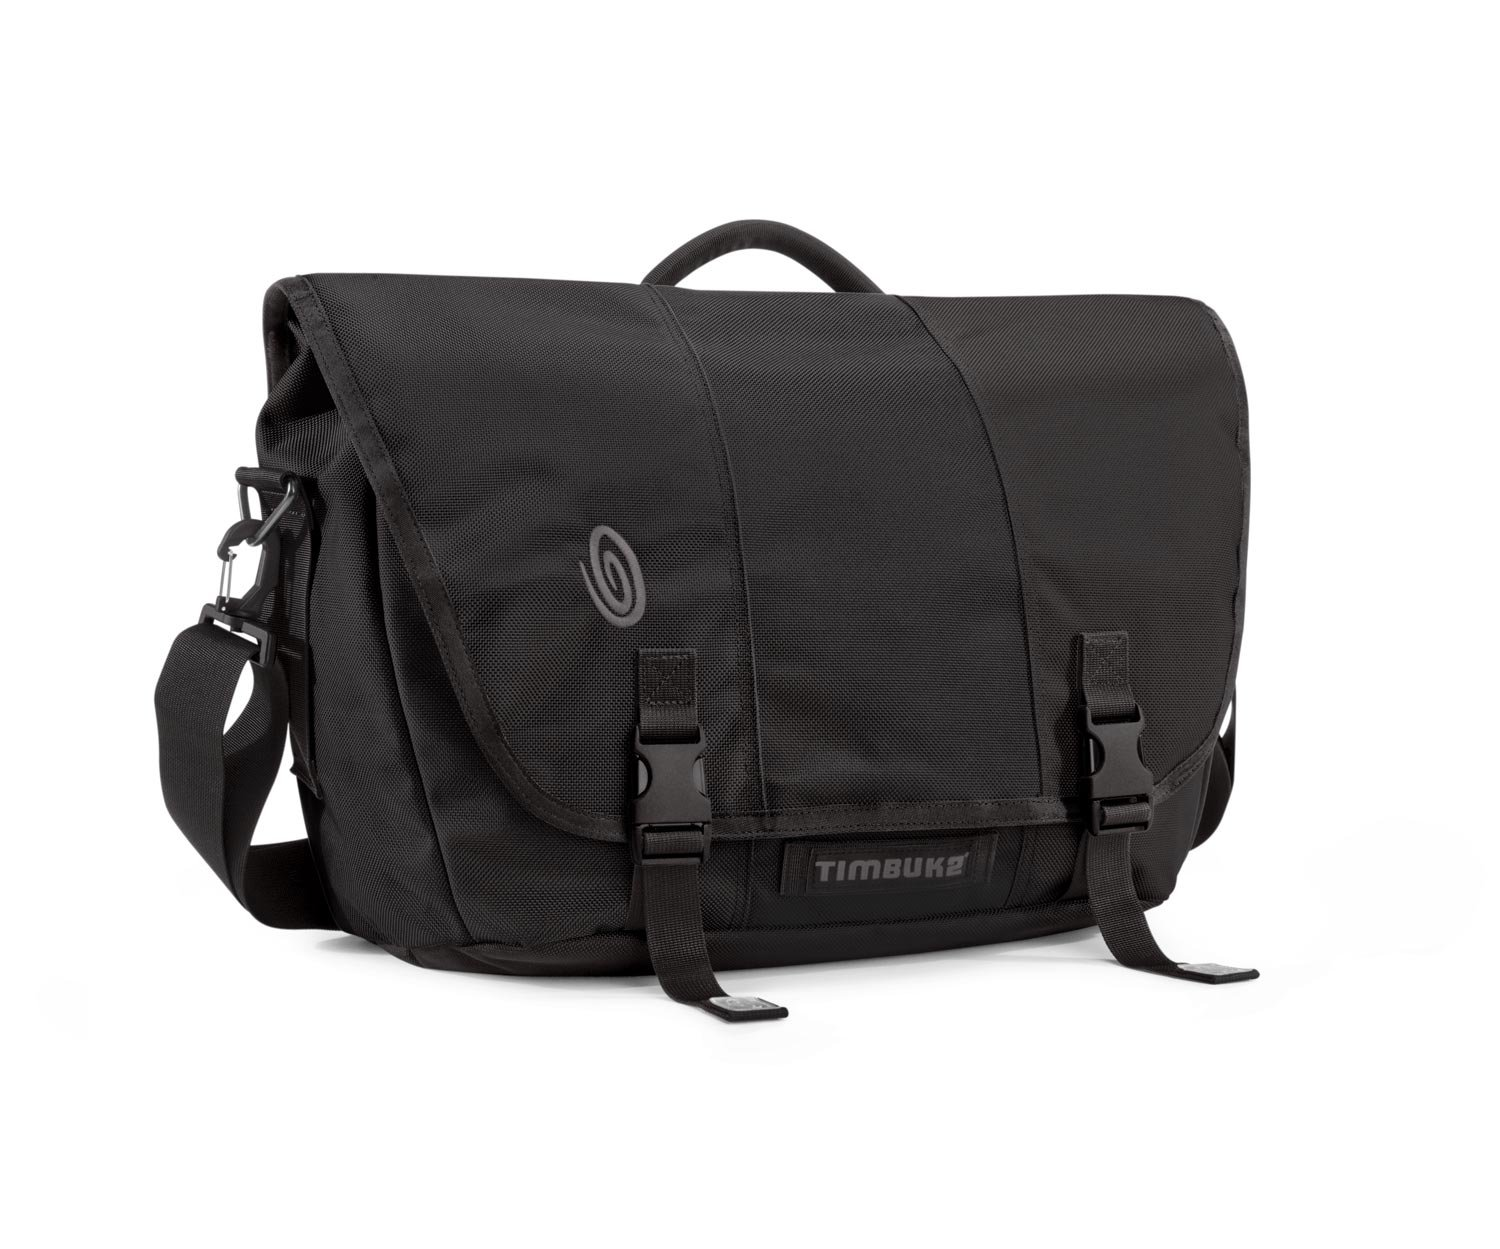 Timbuk2 Commute Messenger Bag 2013, Black, Large